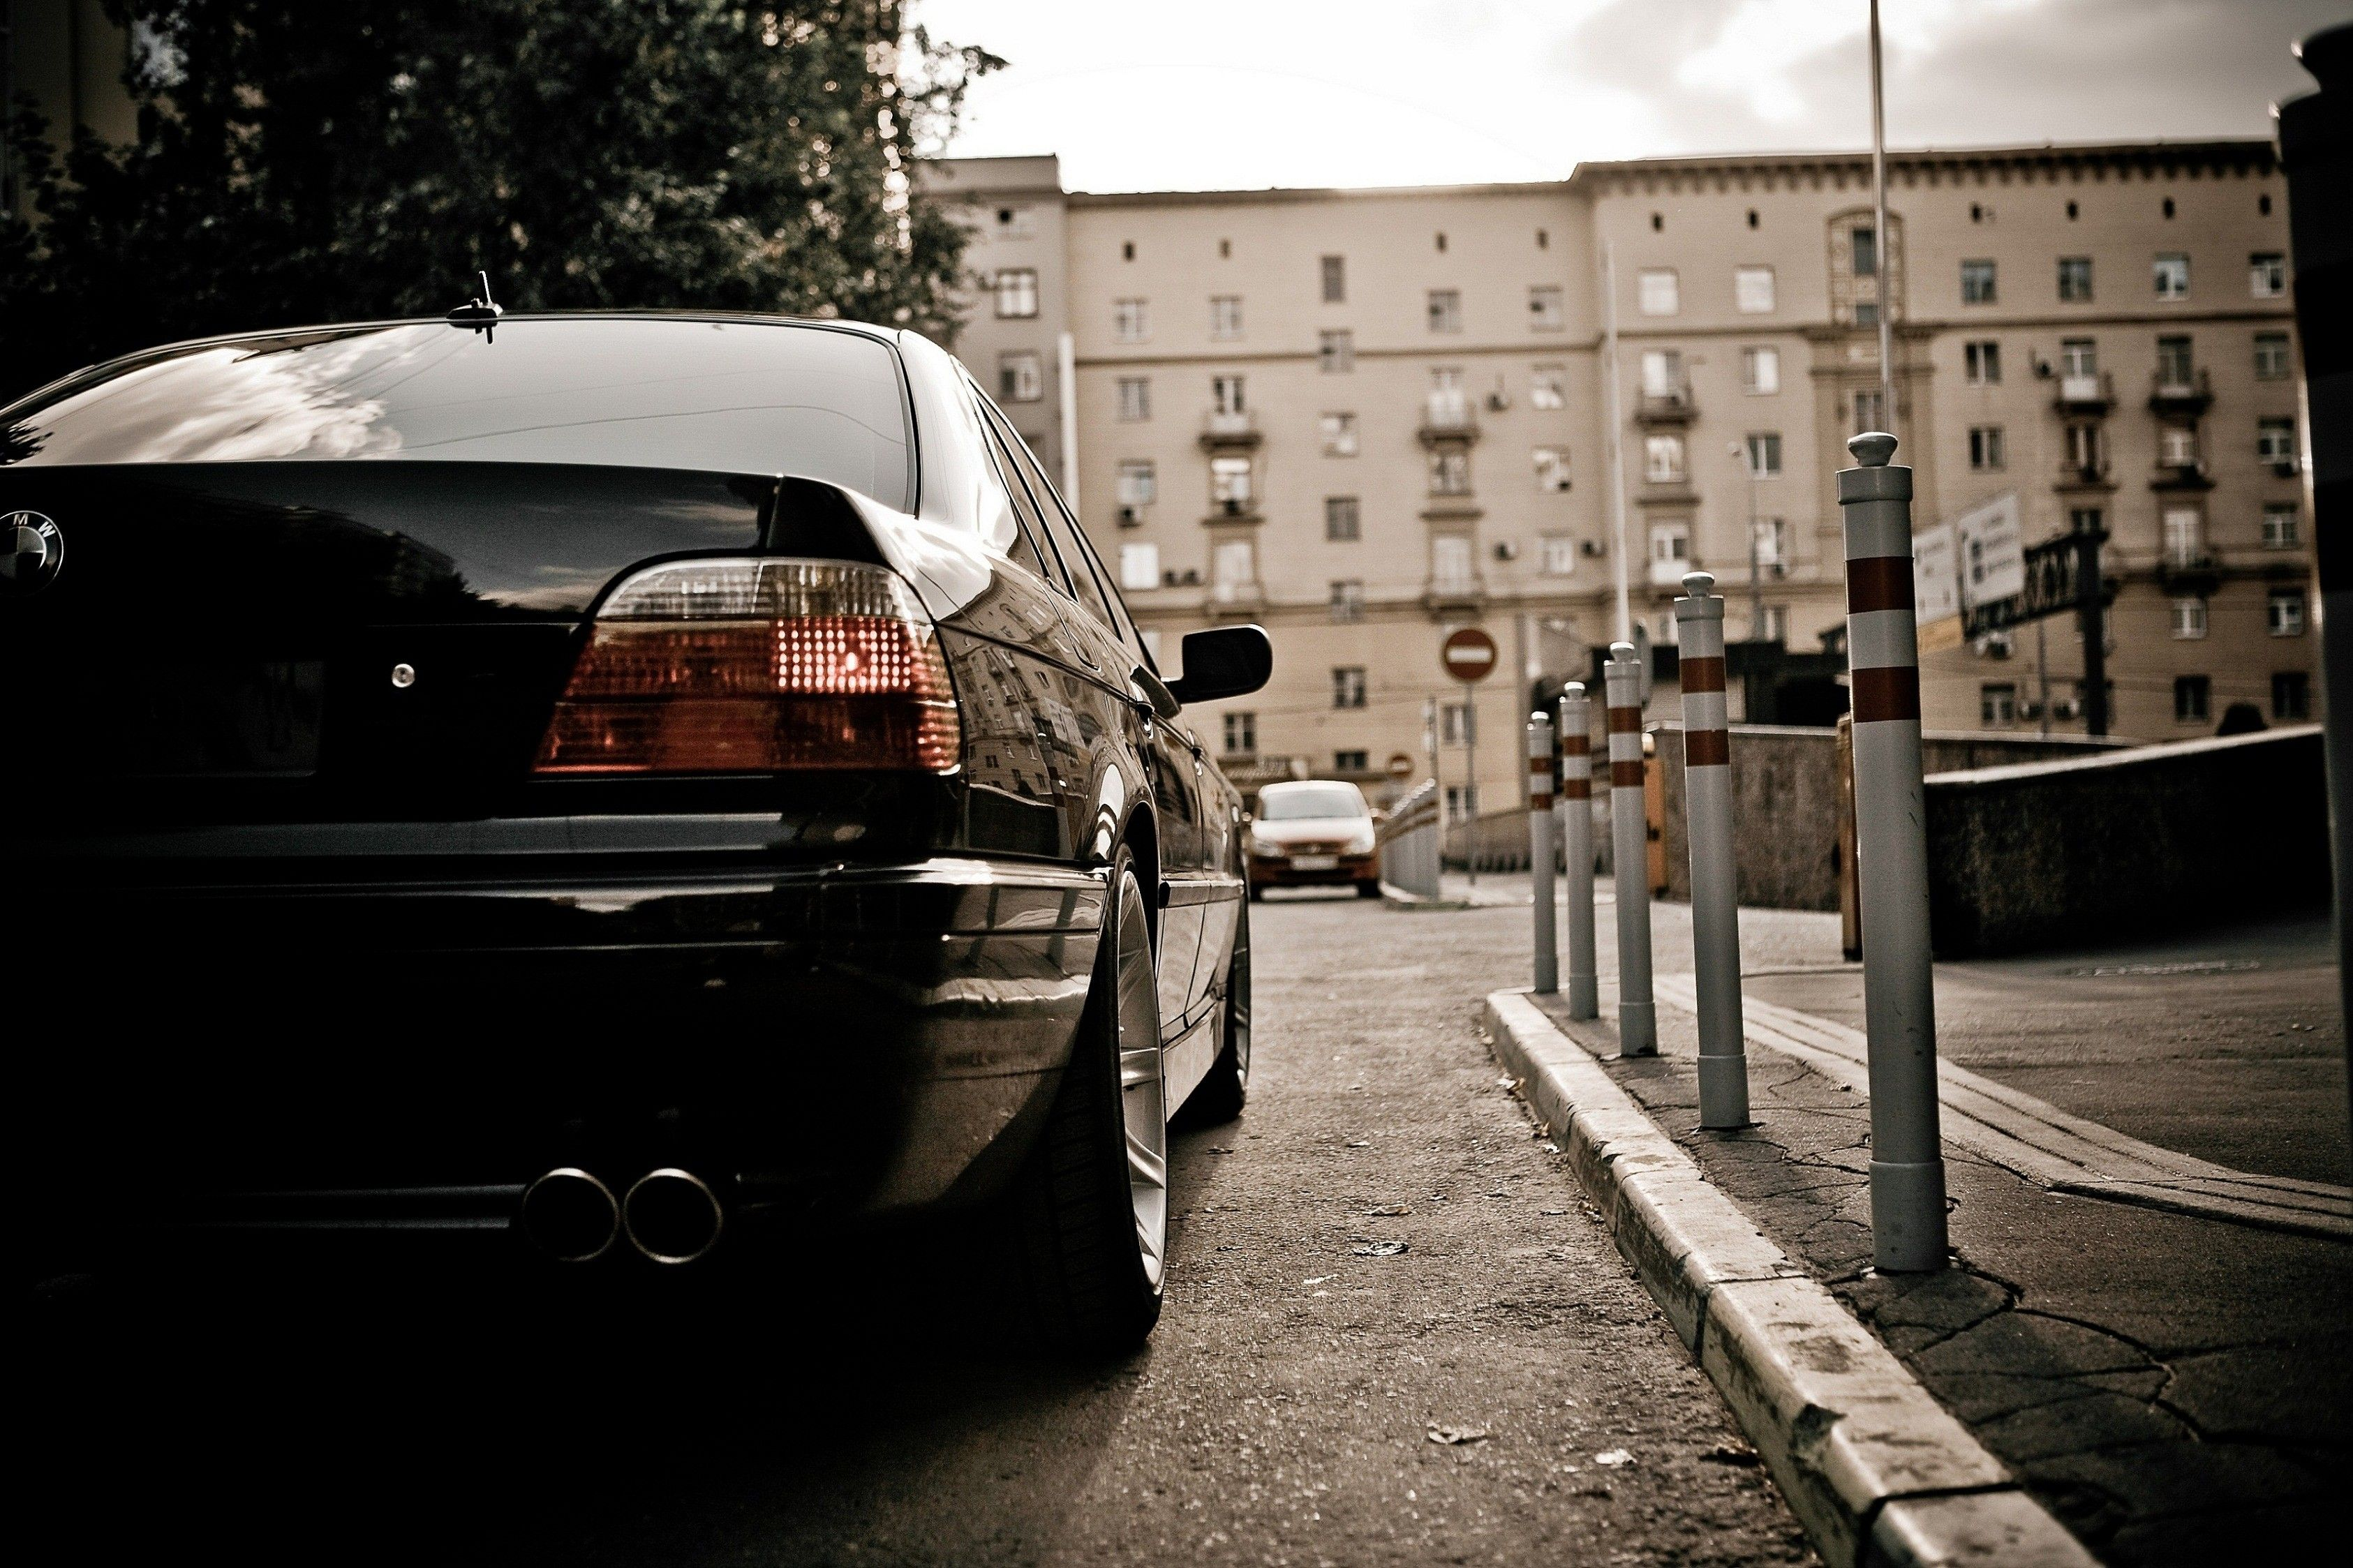 BMW, cars, BMW E38, BMW 7 Series, black cars, rear view :: Wallpapers